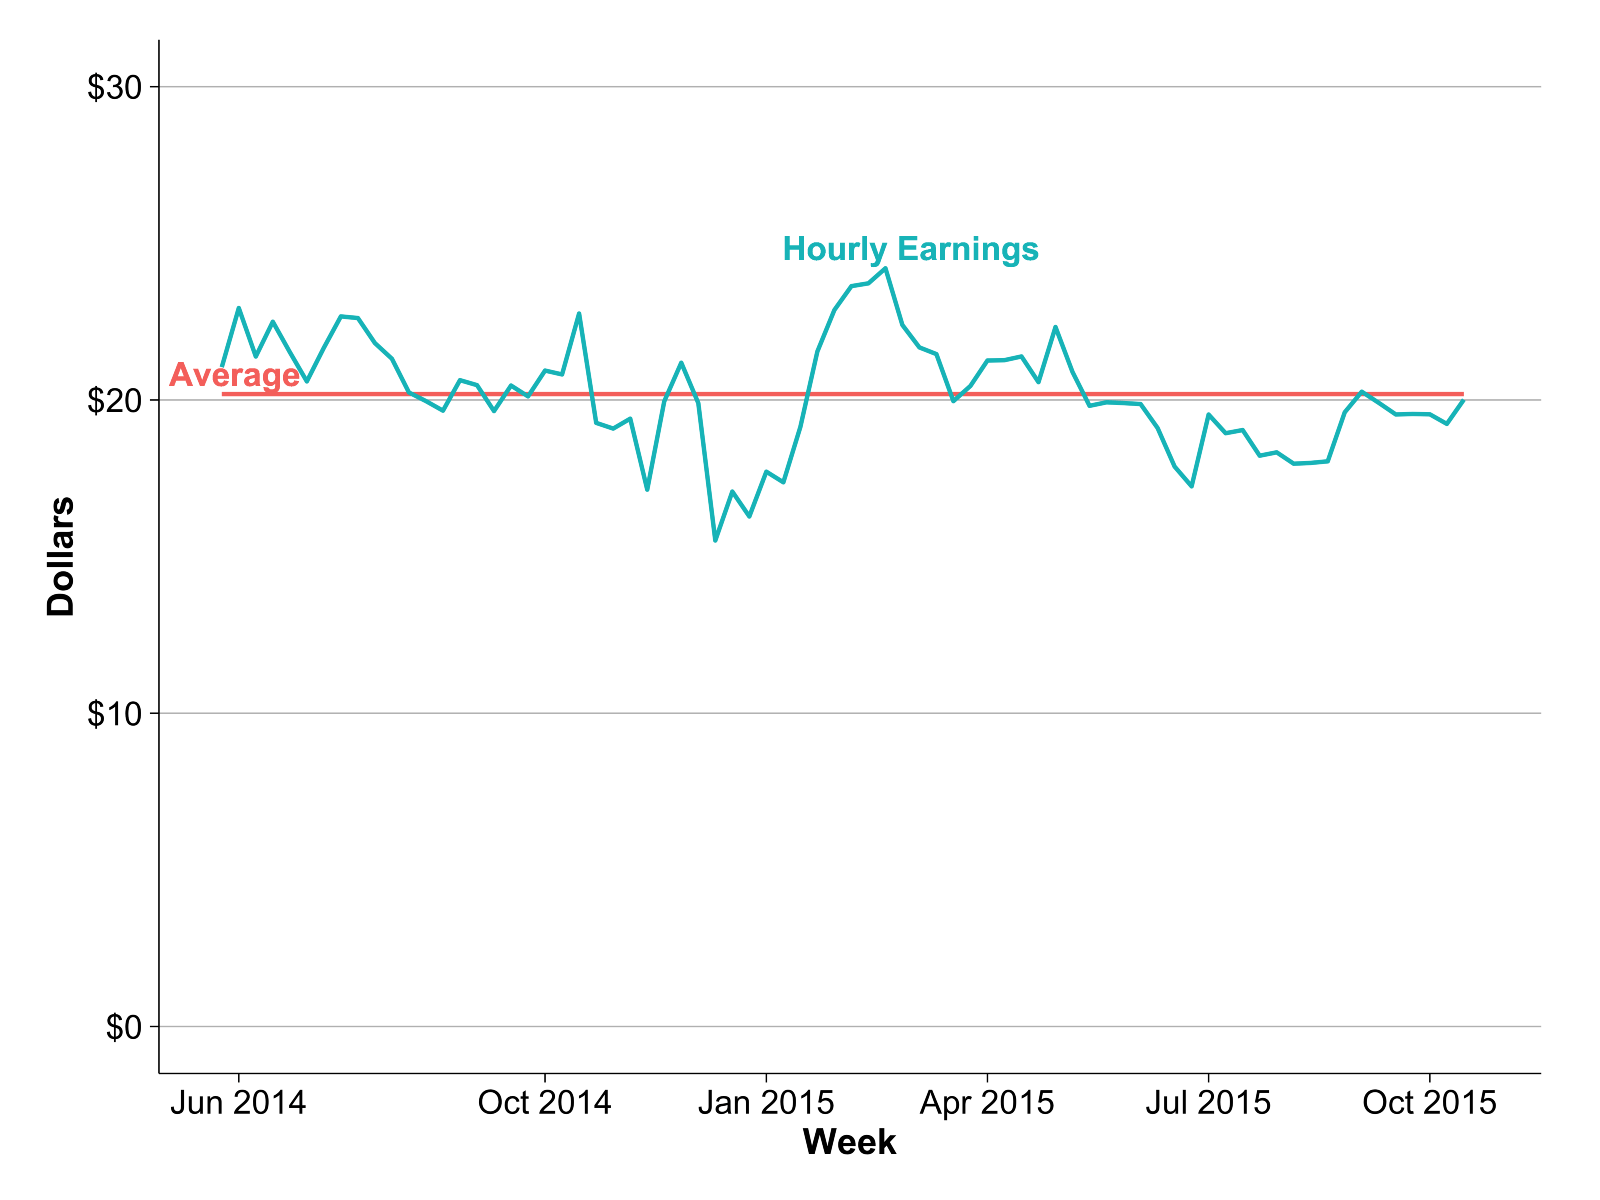 hight resolution of hourly earnings remained stable over time even as prices fell